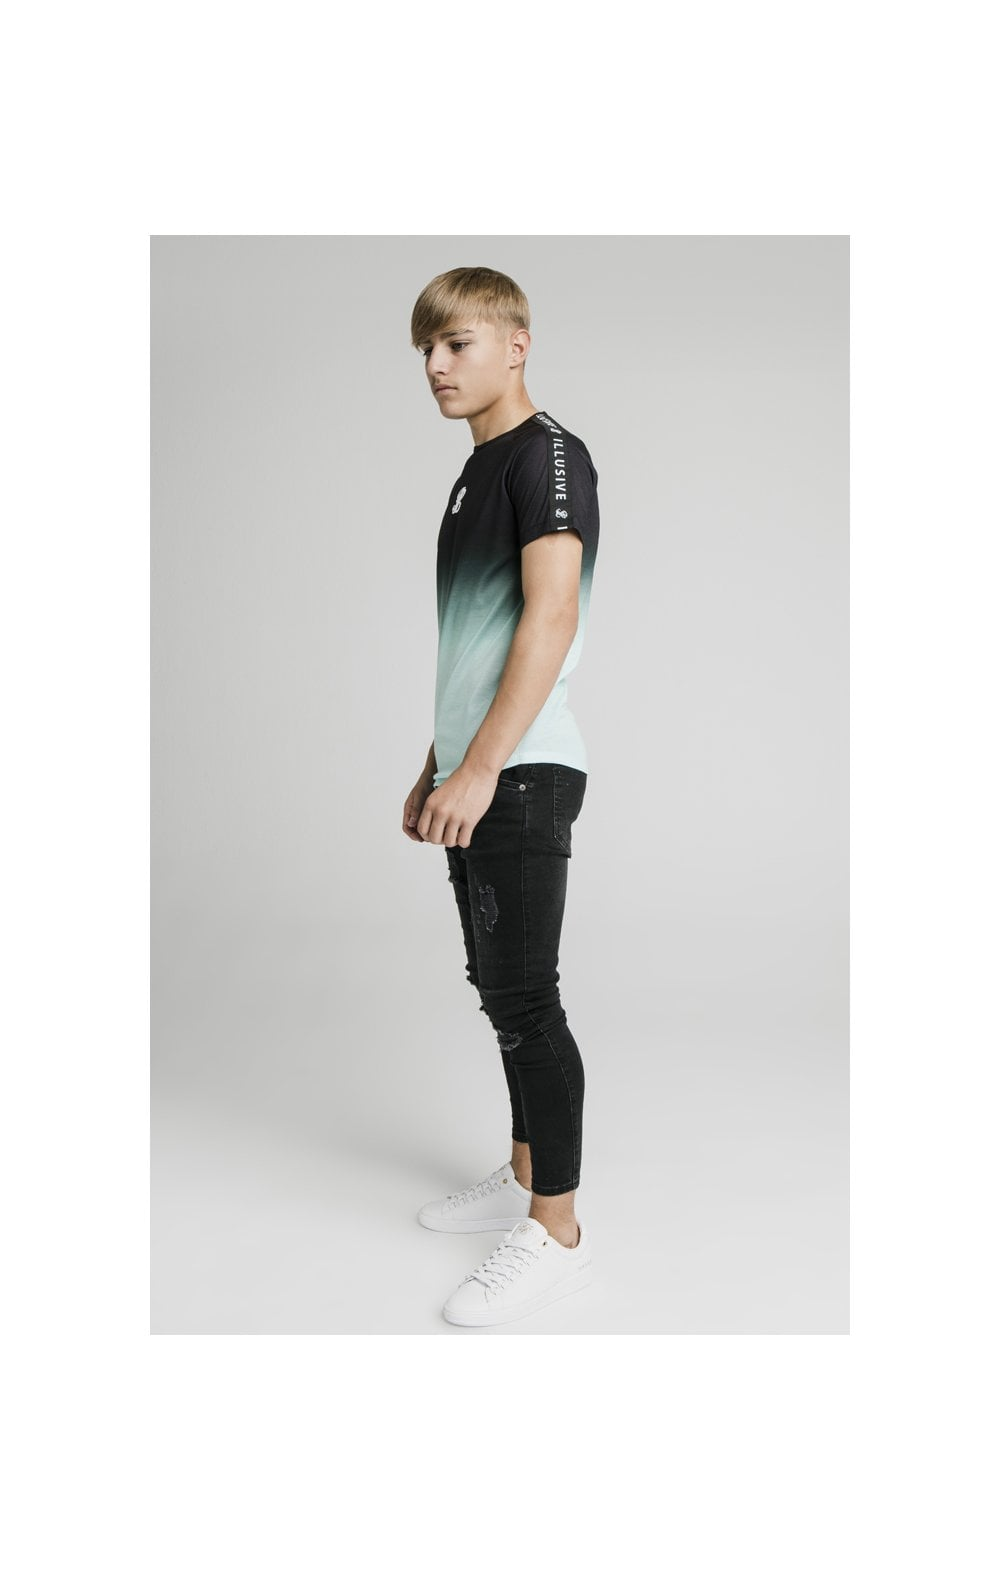 Illusive London Tape Fade Logo Tee - Black & Mint (5)